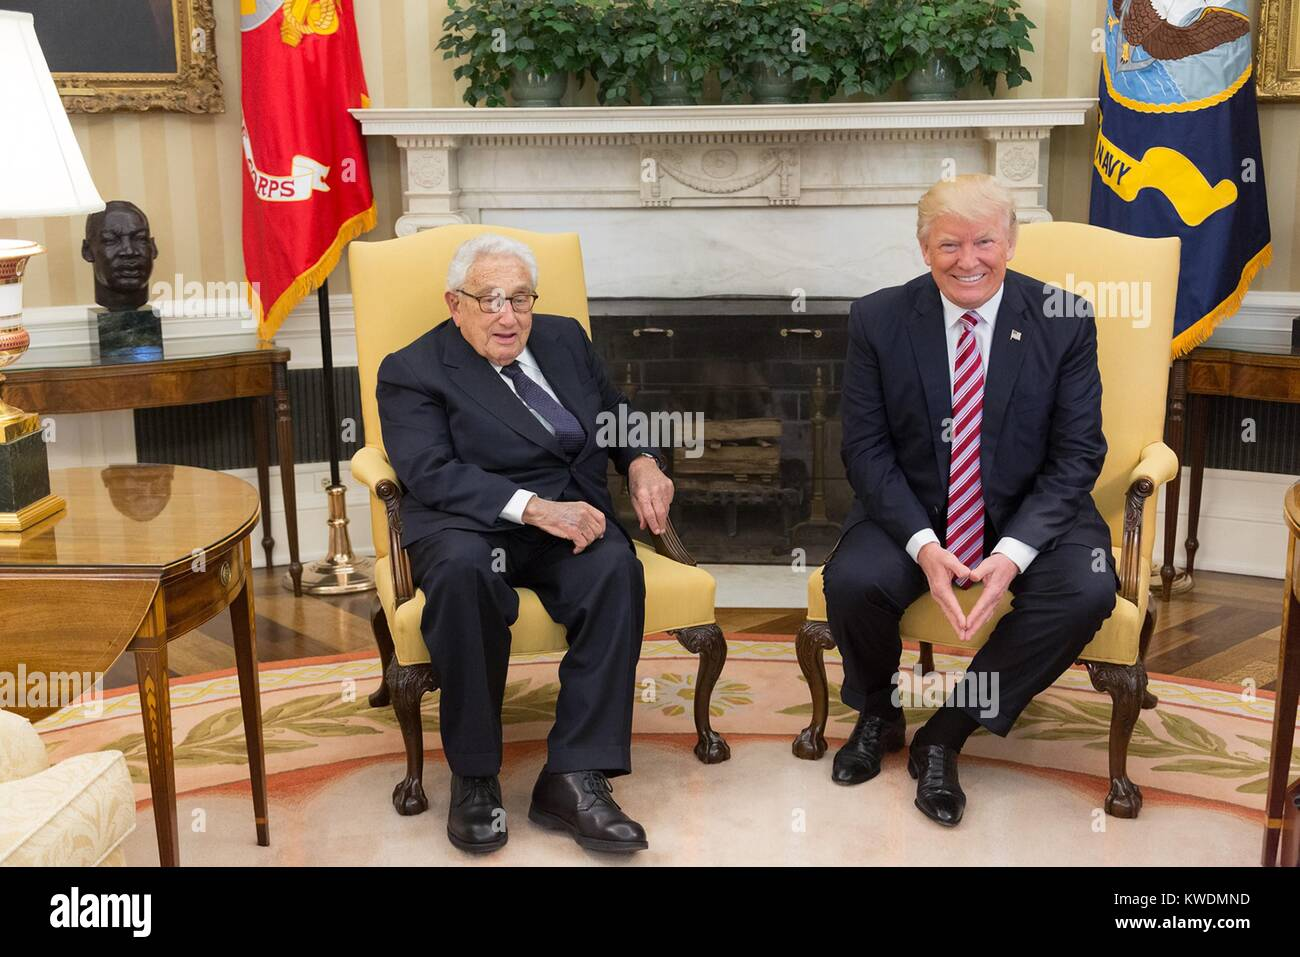 President Donald Trump meets with former Secretary of State Henry Kissinger, May 10, 2017. When Trump and Kissinger Stock Photo